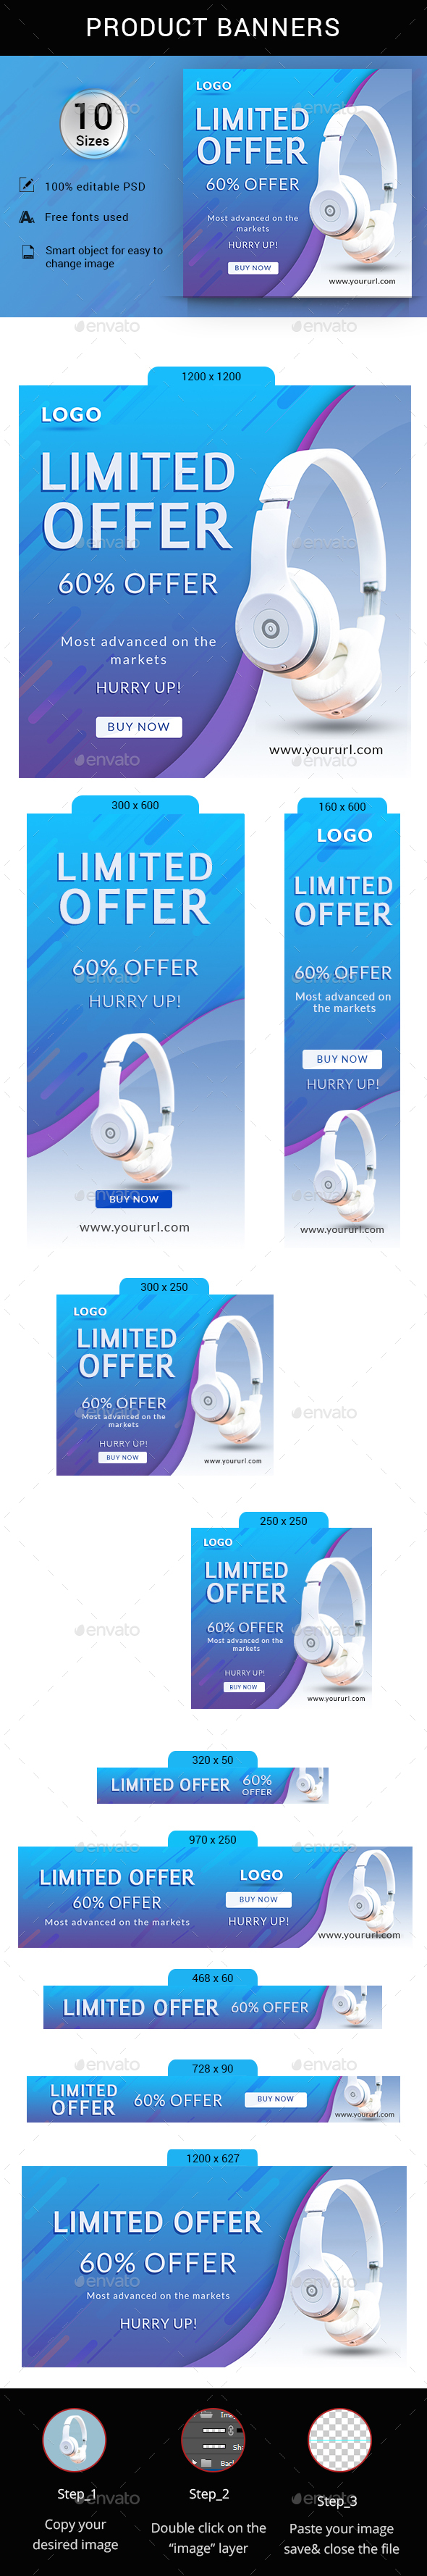 Limited Offer - Banners & Ads Web Elements